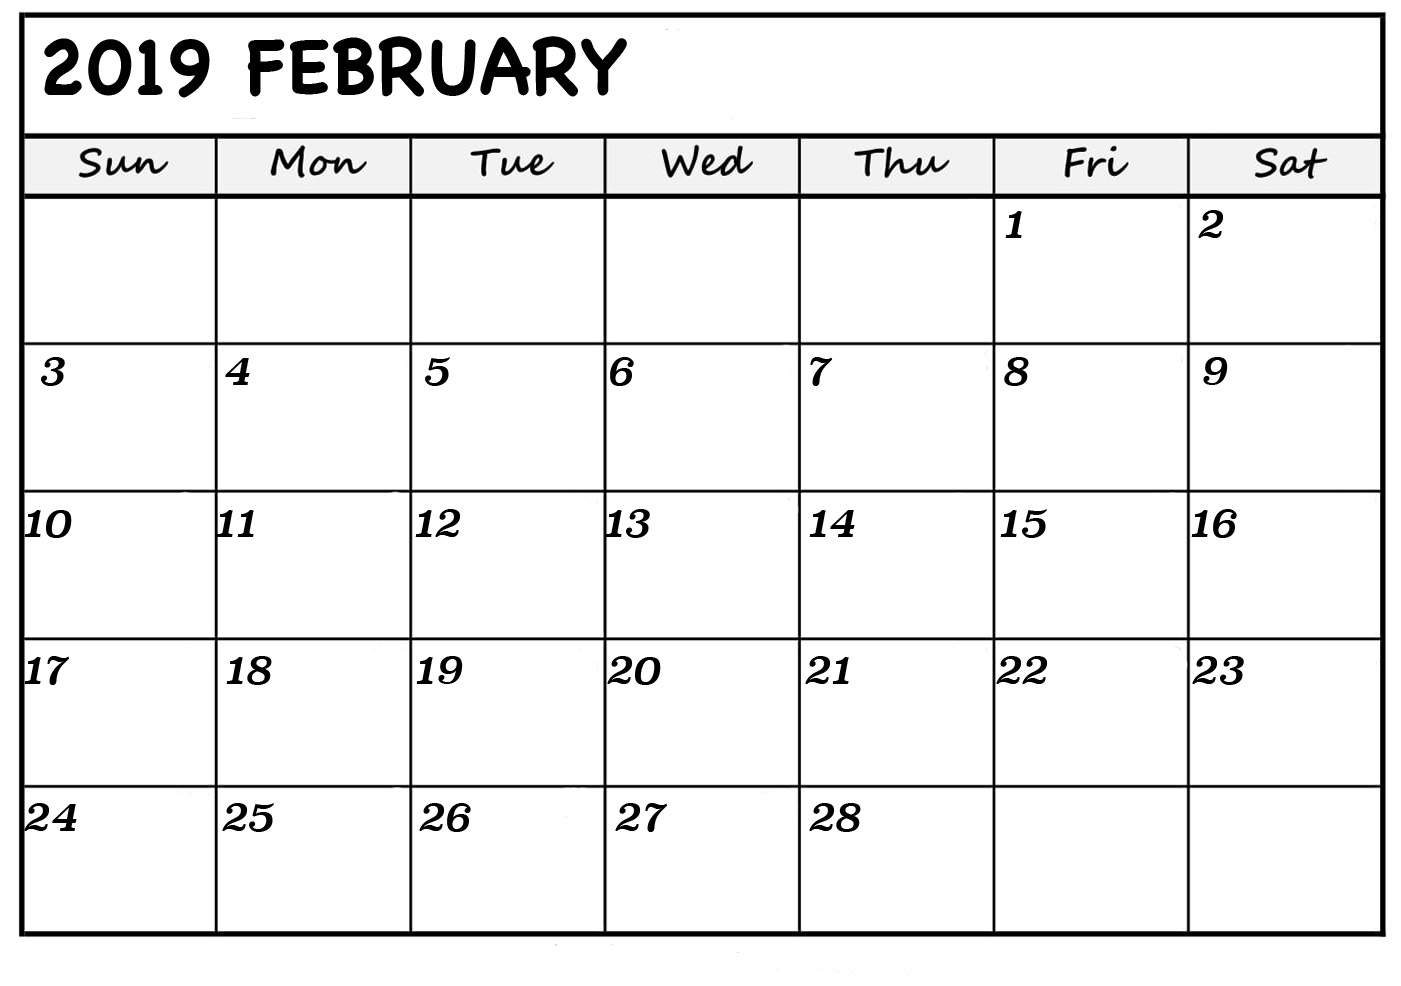 february 2019 template editable download free::February 2019 Calendar Template